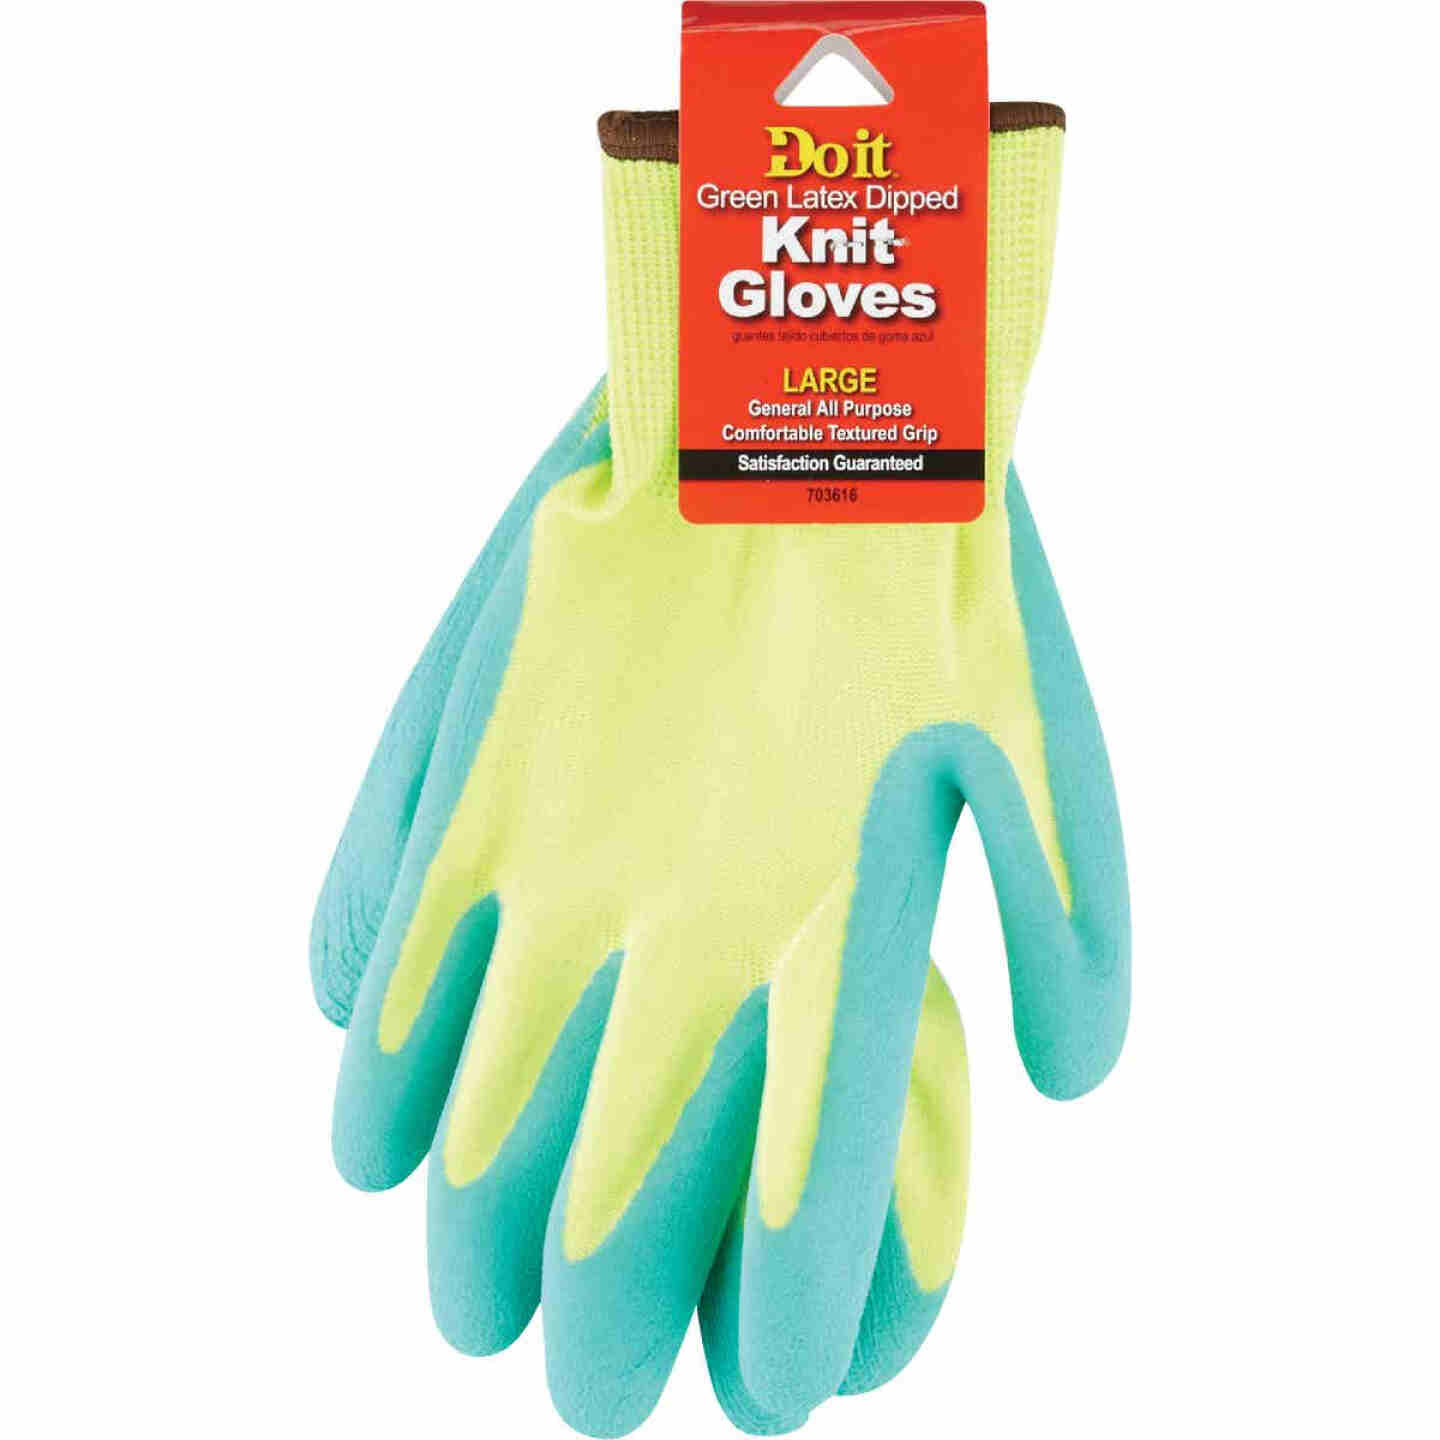 Do it Men's Large Grip Latex Coated Glove, Green Image 2